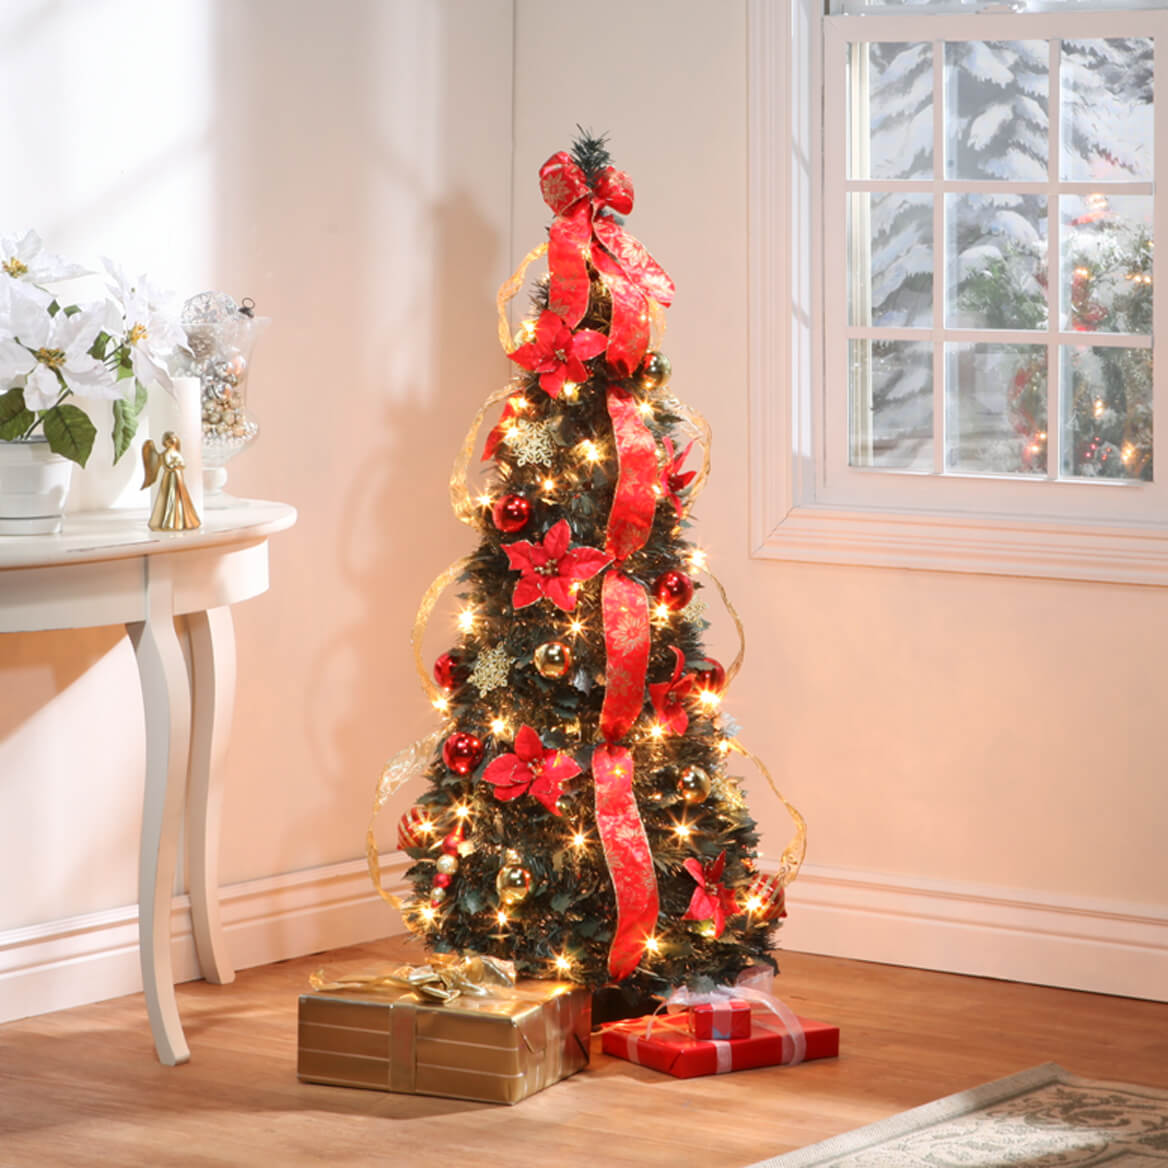 4 read reviews write a review read qa - Fully Decorated Christmas Trees